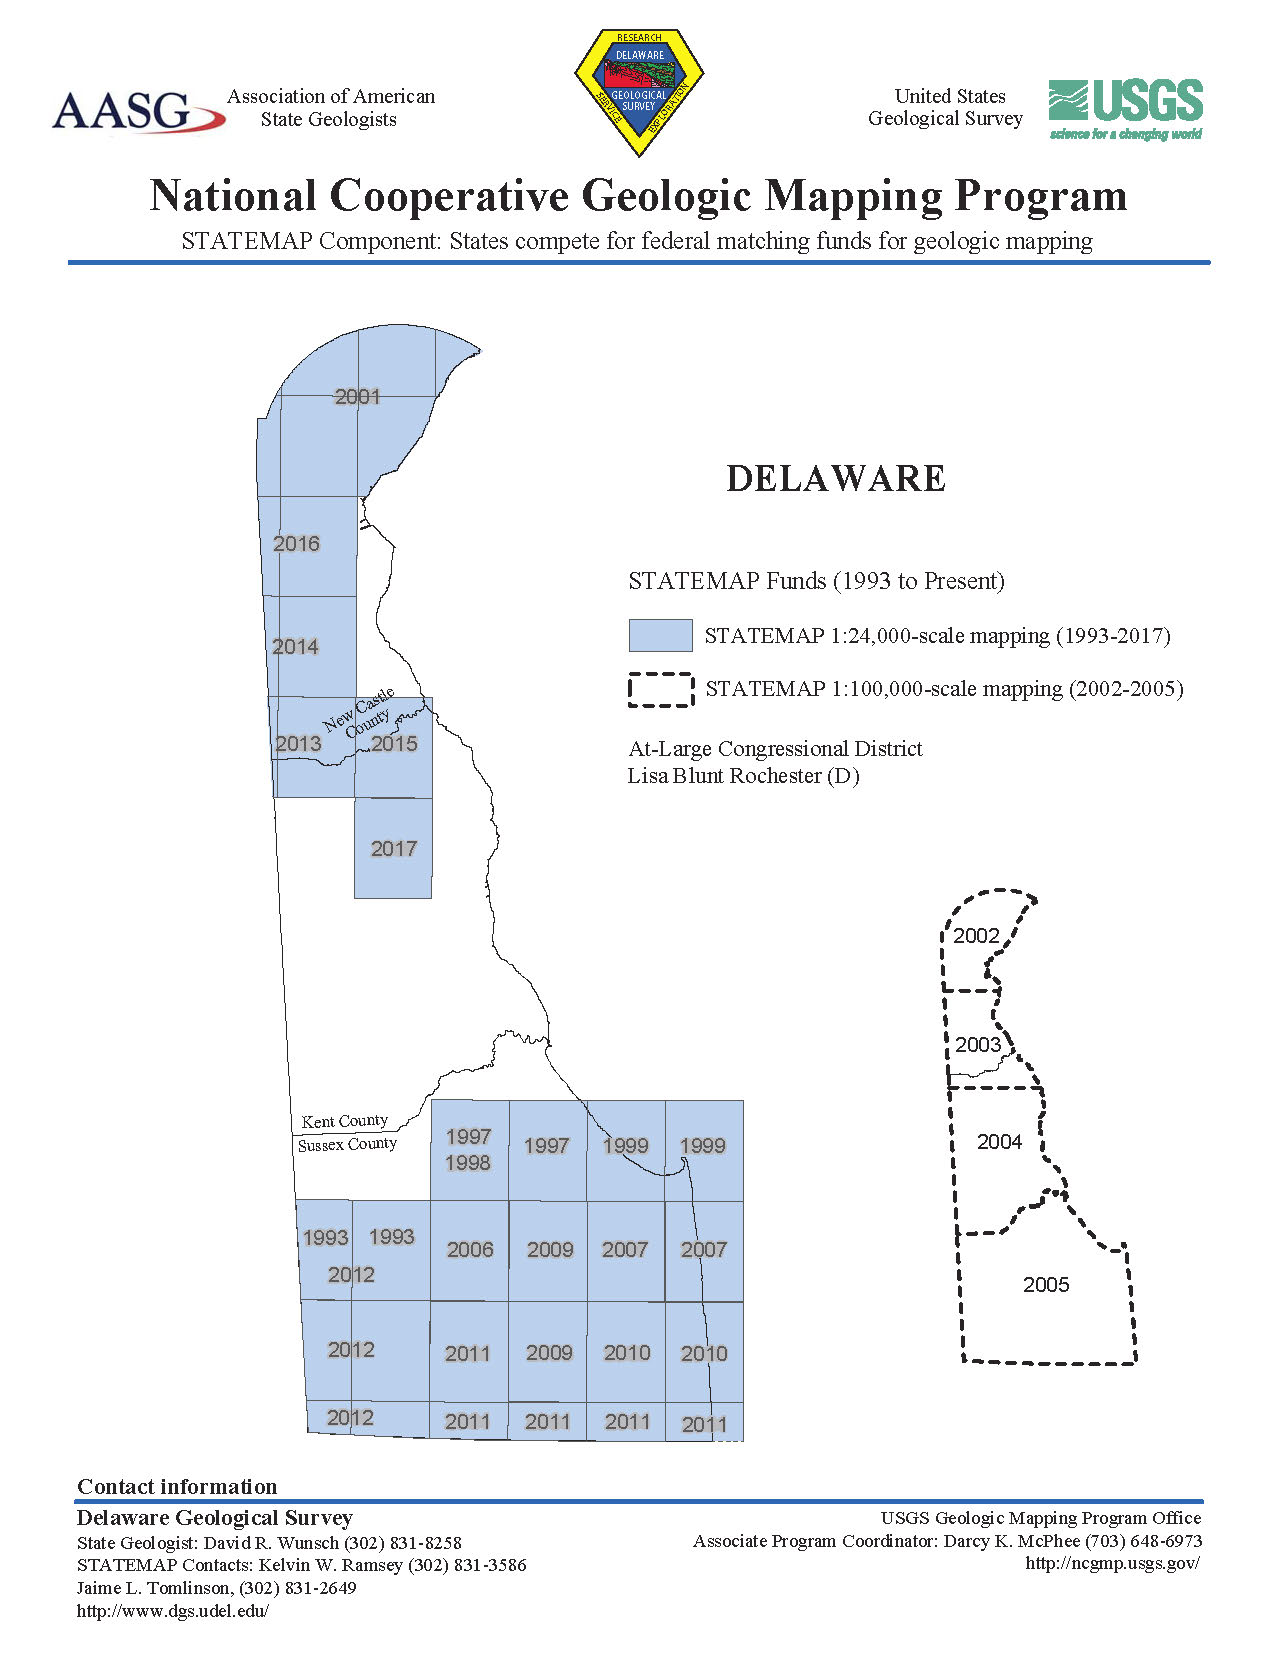 Delaware Geologic Mapping Program (STATEMAP) | The Delaware ... on mississippi map, georgia map, north carolina map, nova scotia map, michigan map, south carolina map, kansas map, idaho map, new england map, wisconsin map, ohio map, maine map, dc map, usa map, connecticut map, iowa map, pennsylvania map, nevada map, illinois map, us state map, rhode island map, virginia map, minnesota map, florida map, louisiana map, maryland map, utah map, missouri map, montana map, indiana map, texas map, new york map, kentucky map,